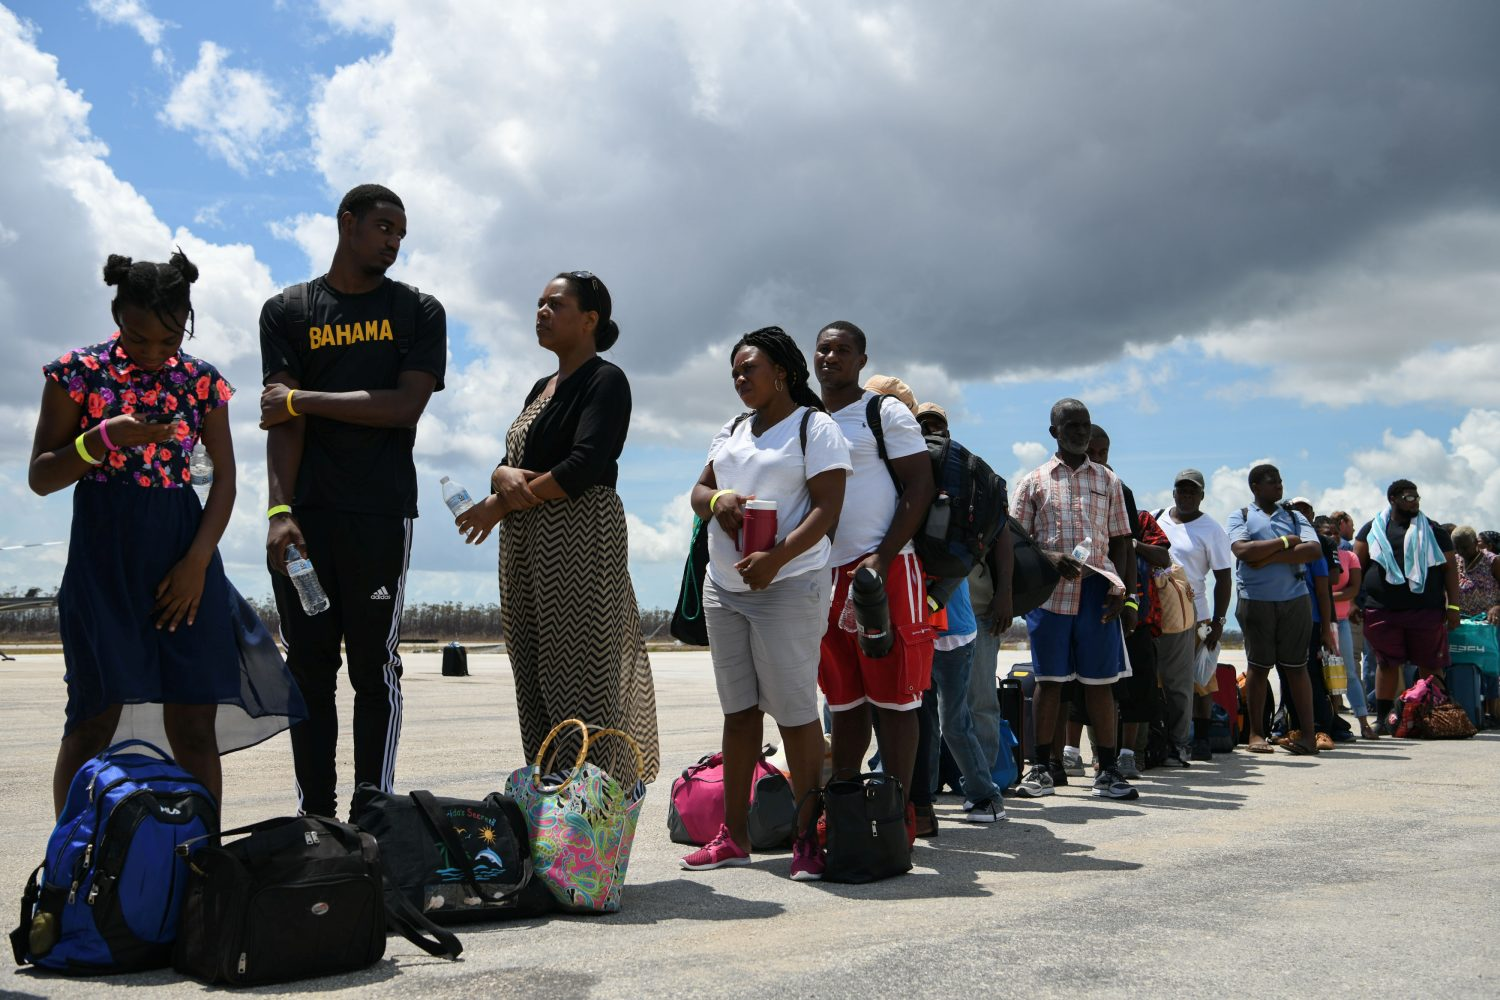 Abaco residents are evacuated from the island at the airport in the wake of Hurricane Dorian in Marsh Harbour, Great Abaco, Bahamas, September 8, 2019. REUTERS/Loren Elliott